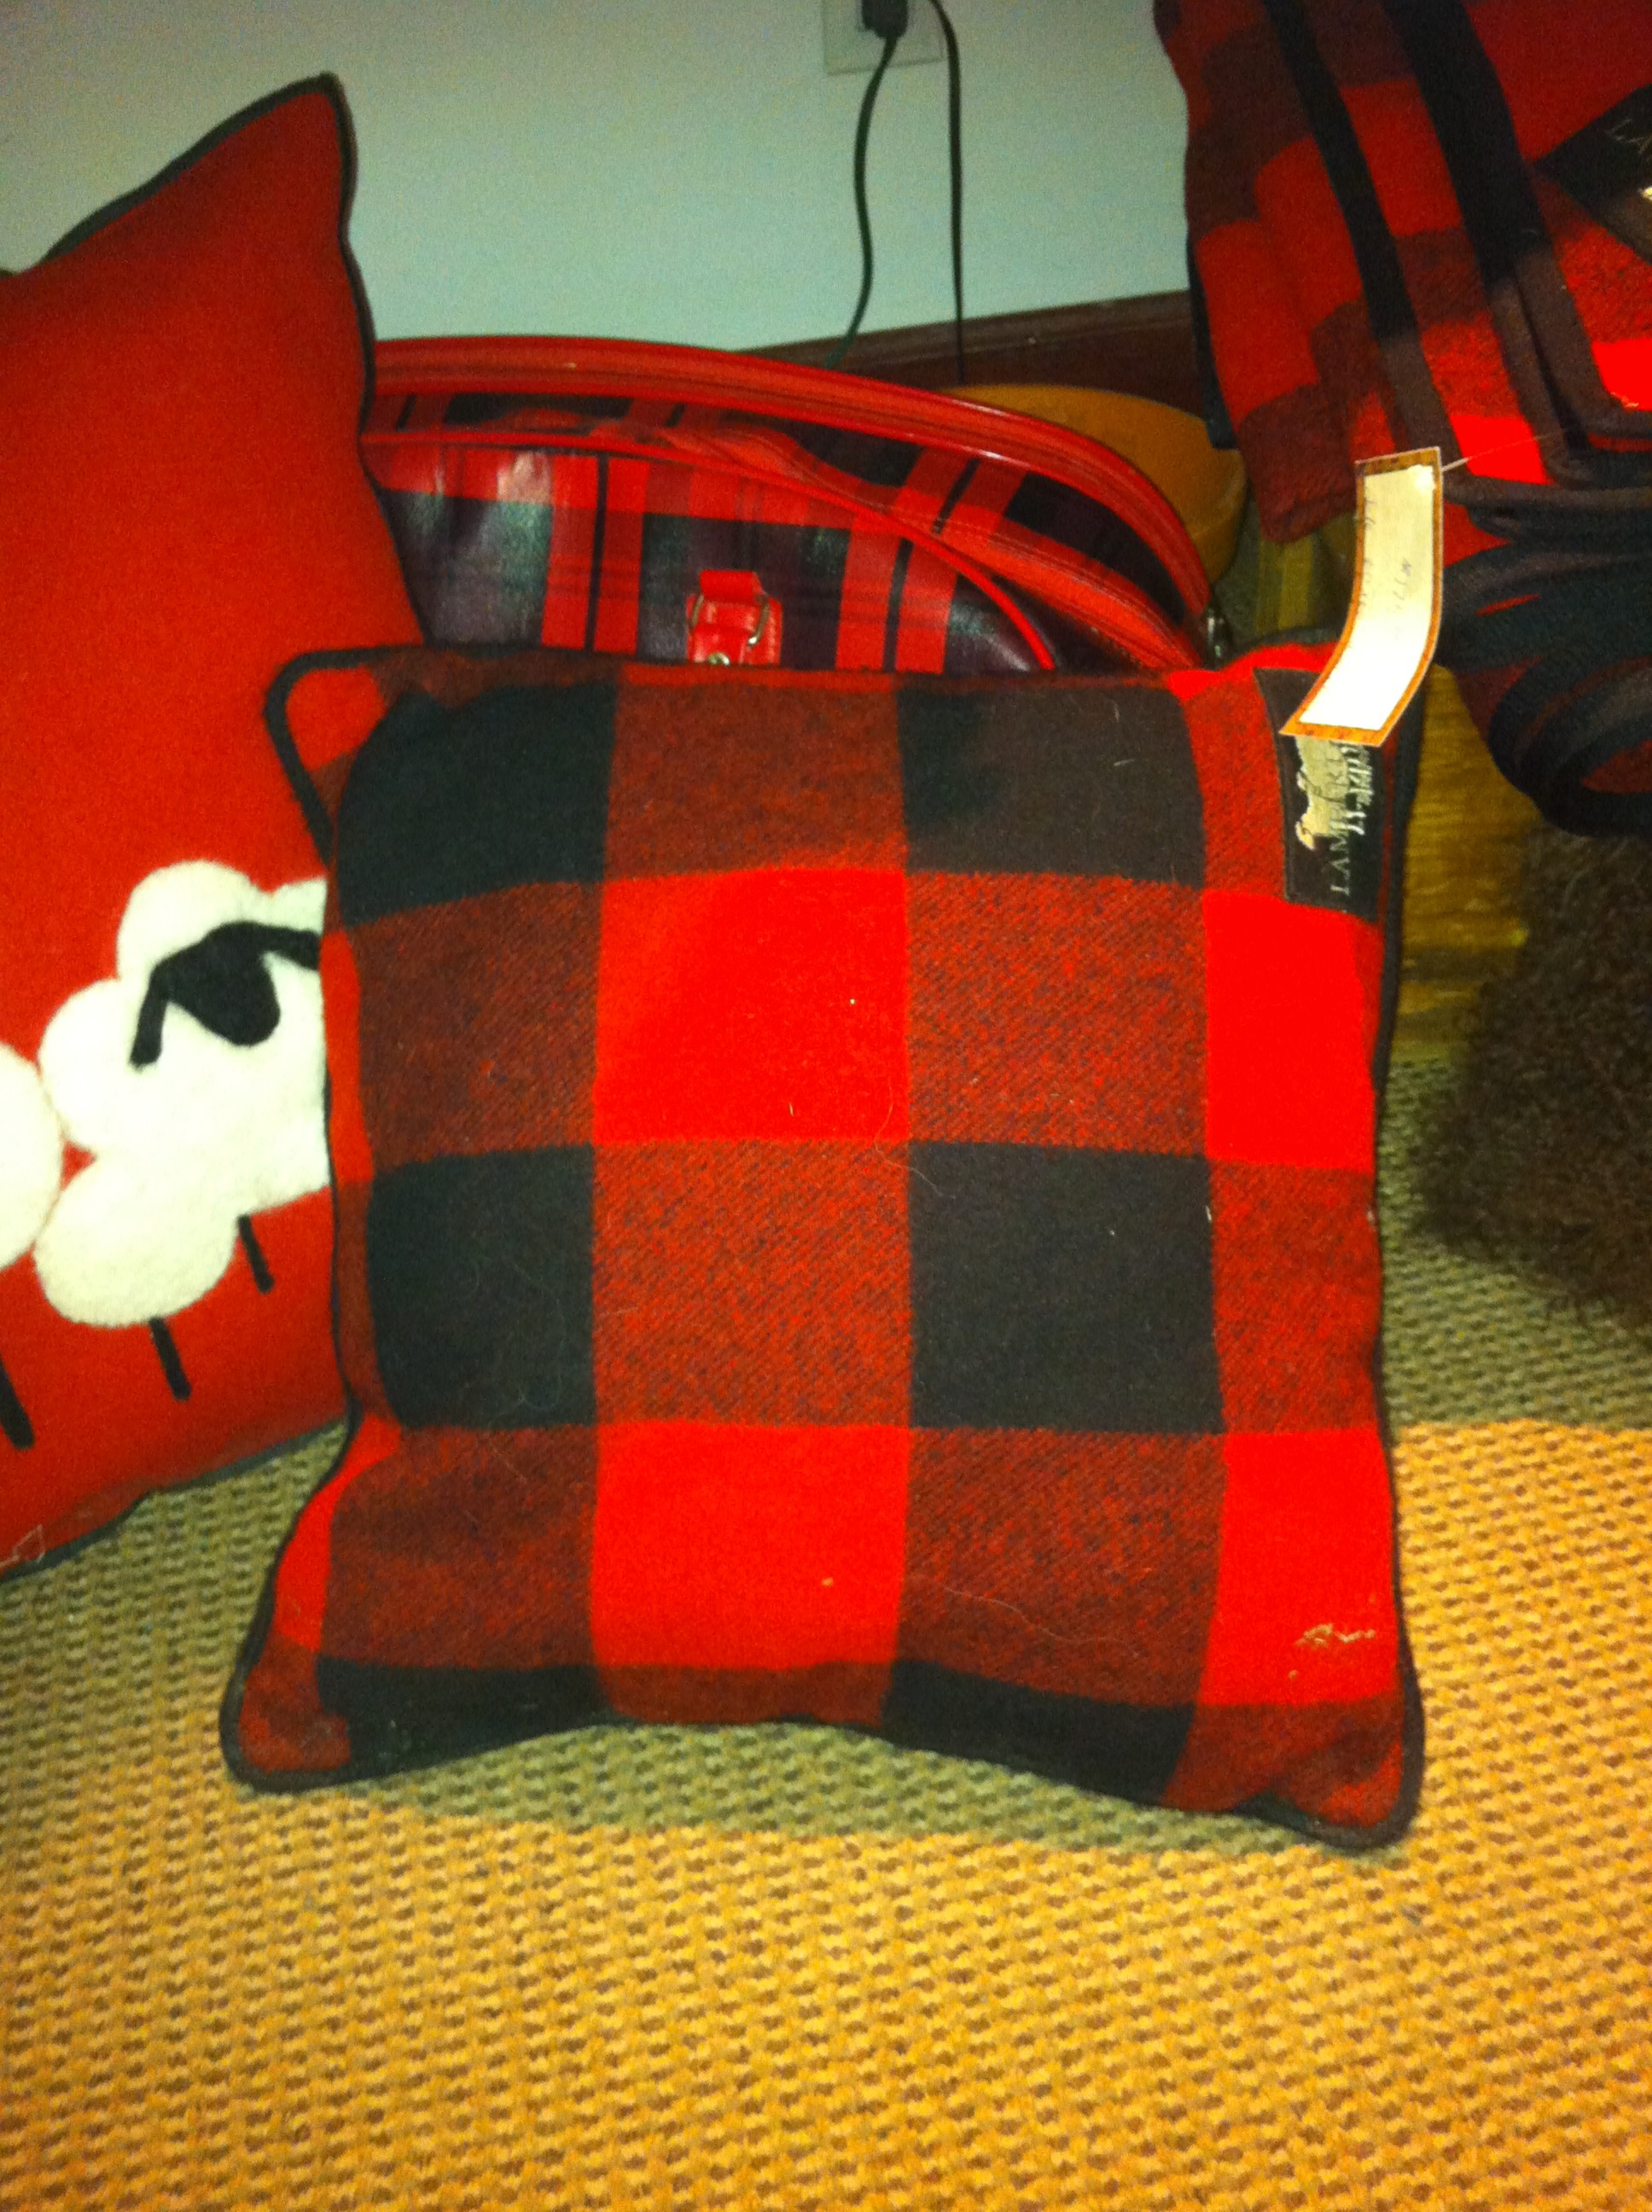 A red buffalo plaid throw pillow at Lambert & Co